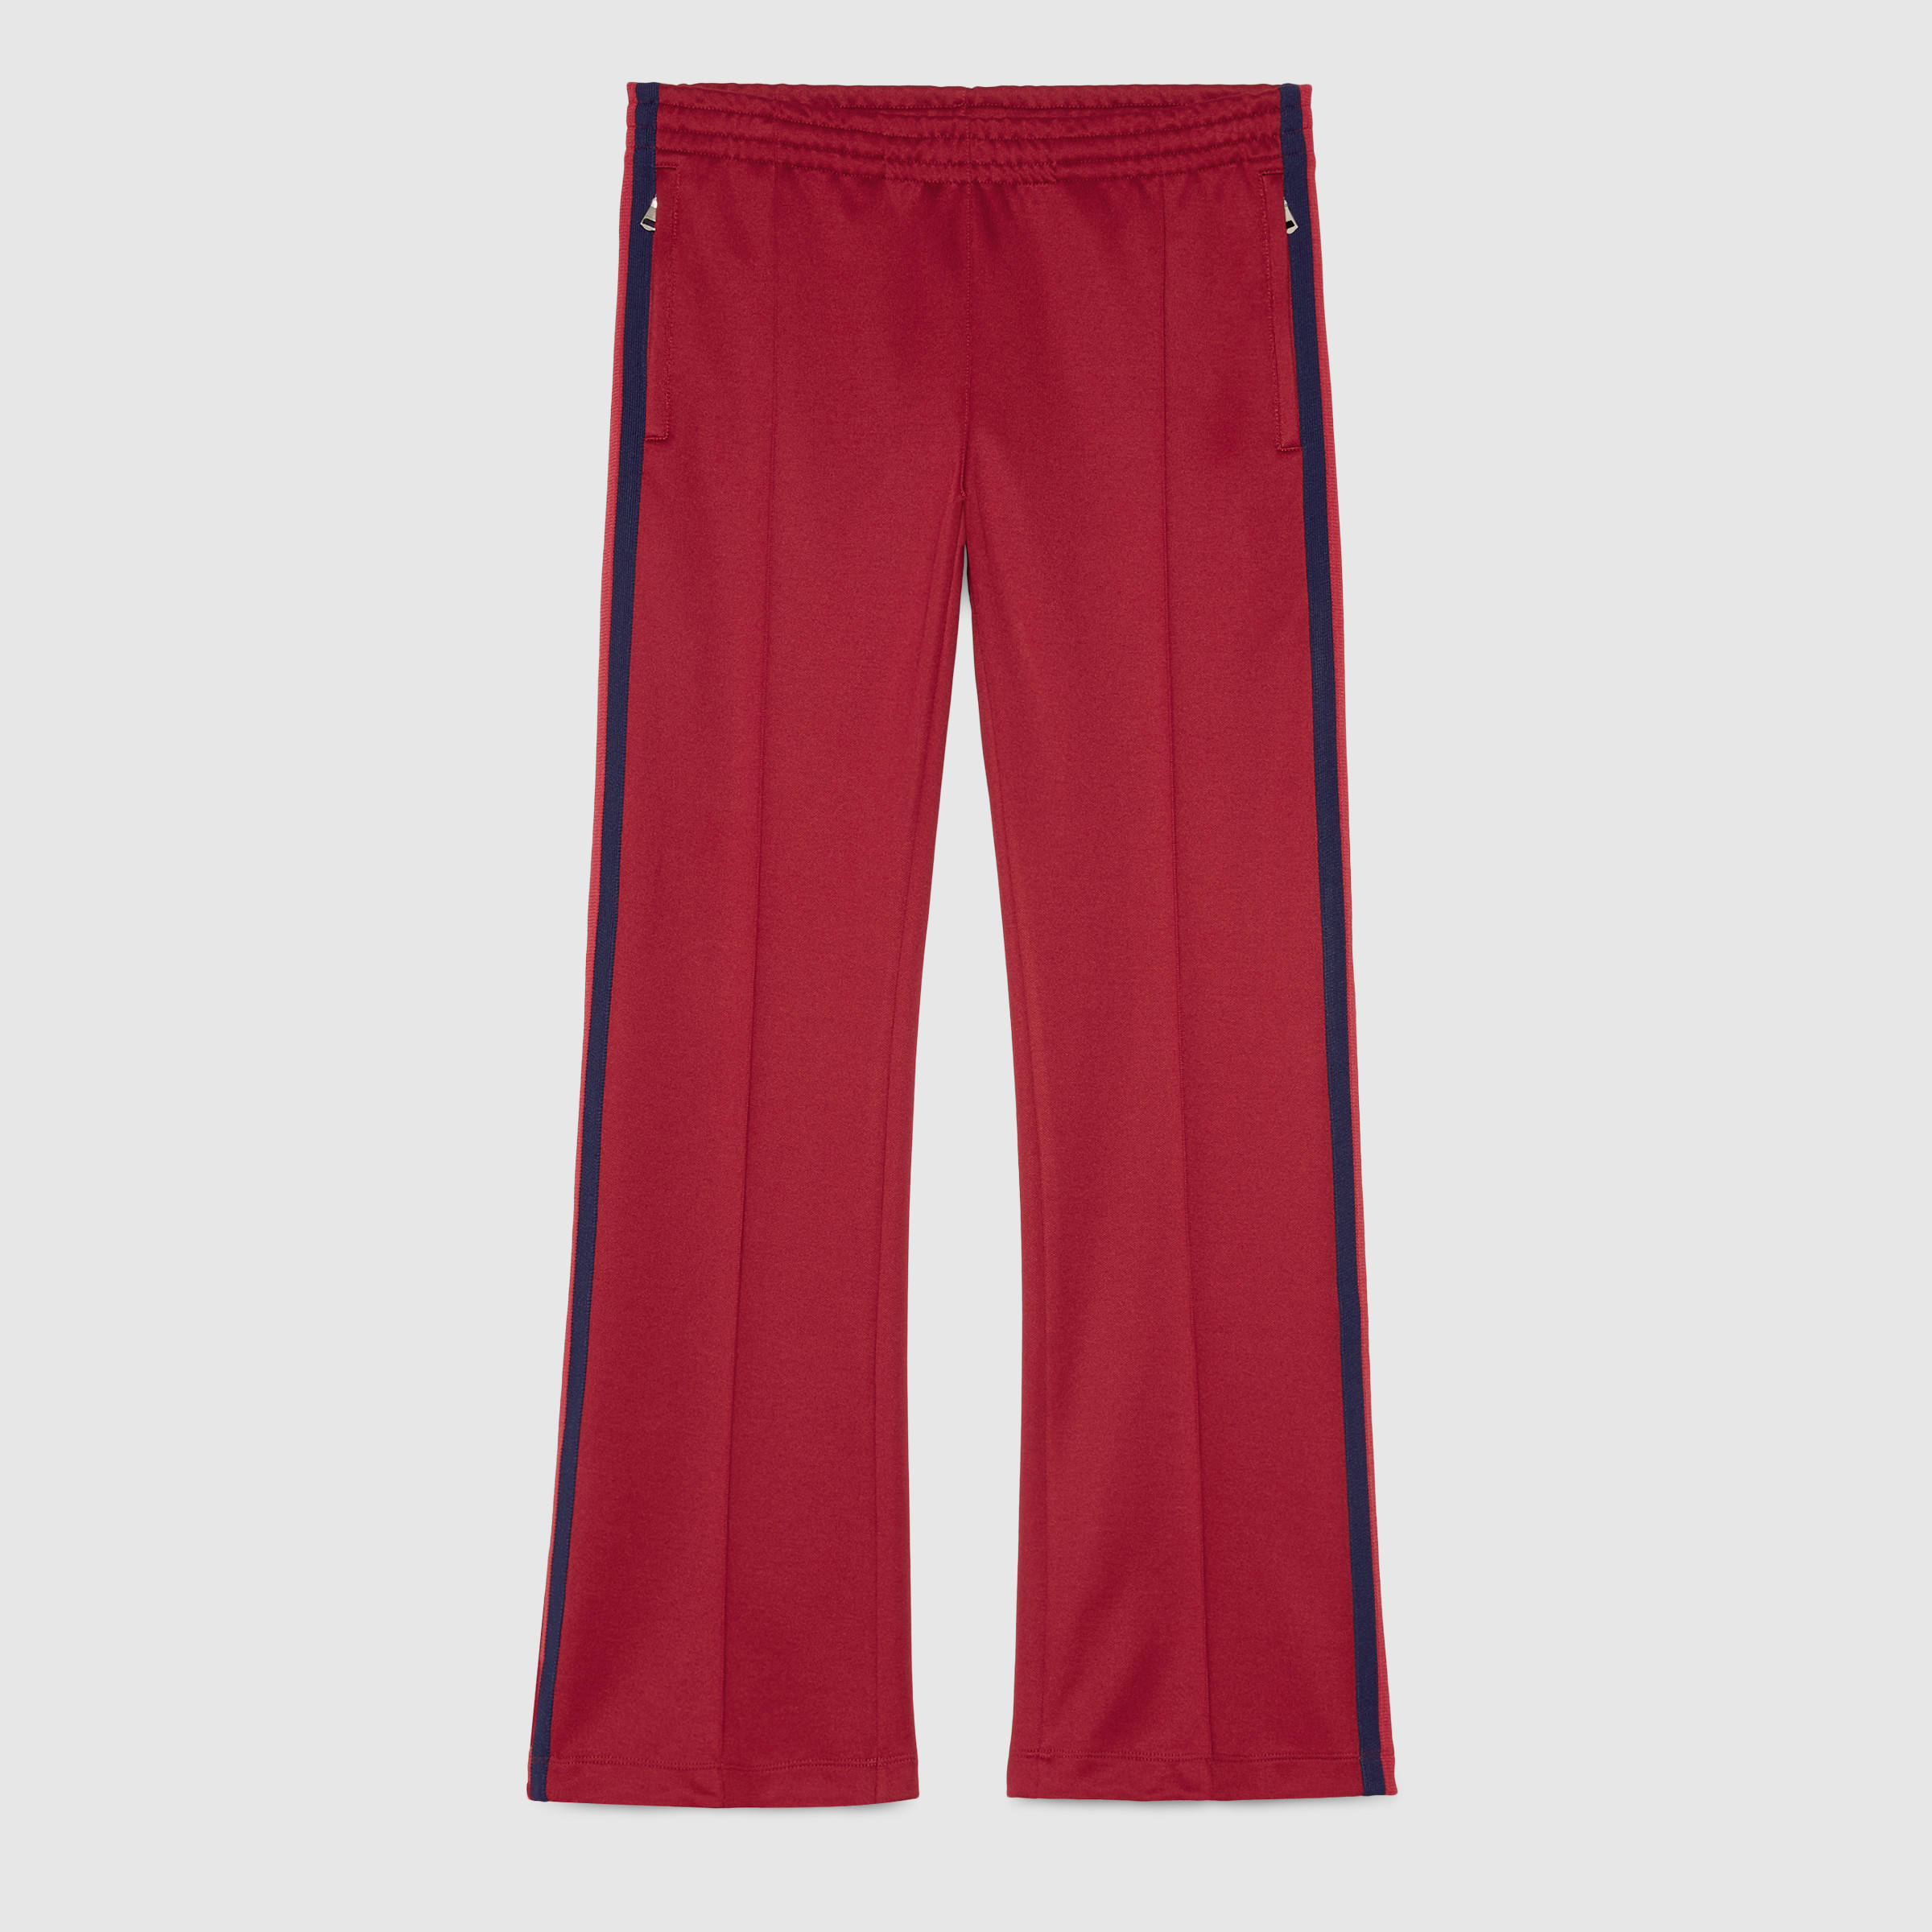 gucci-red-jersey-pant